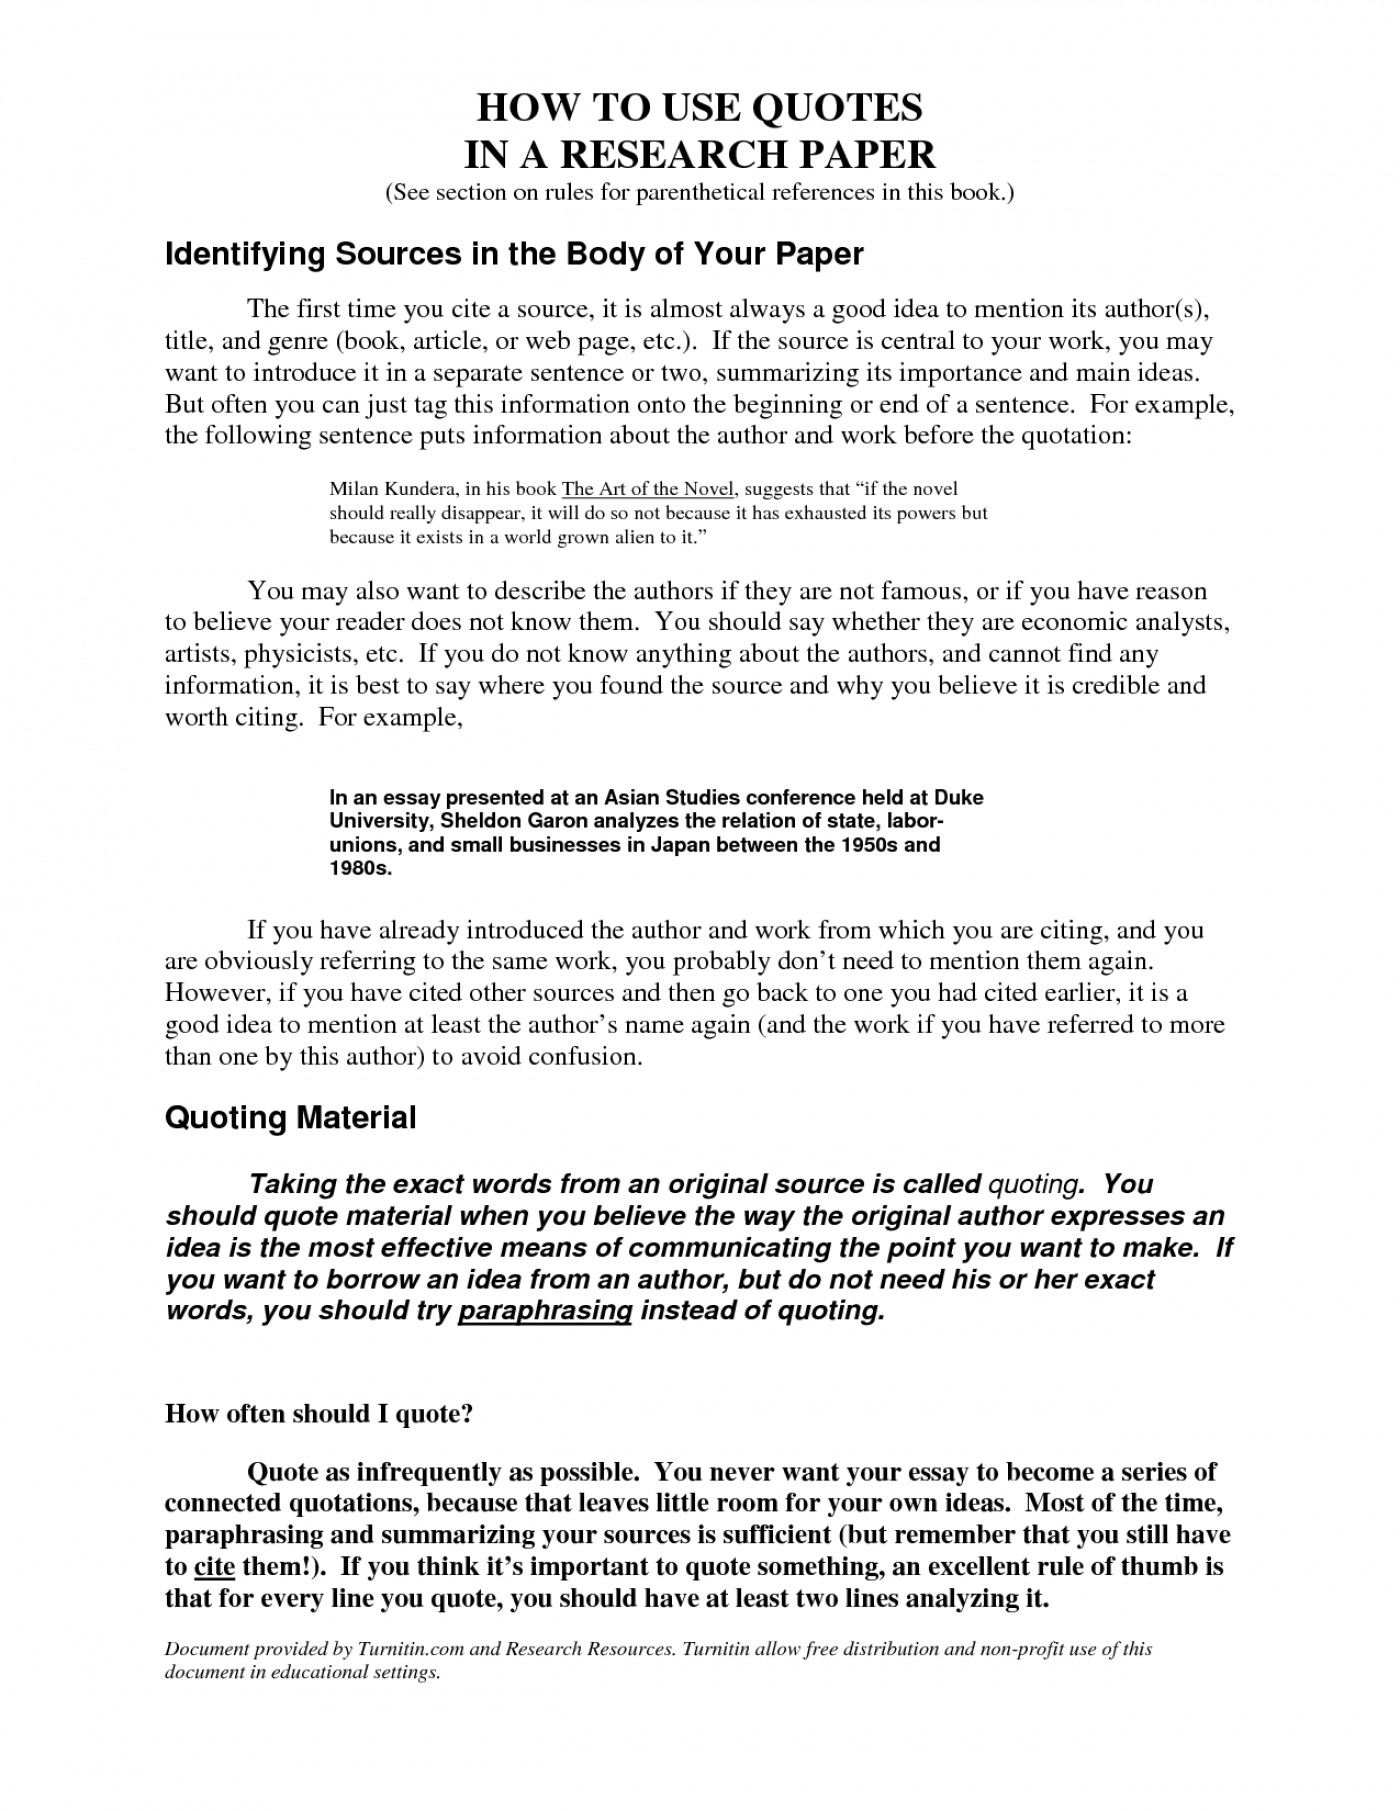 003 Best Solutions Of Writing Quotes In Essays Marvelous Embedding On Quotestopics Essay Example Quoting Frightening An Examples Dialogue Shakespeare A Play Mla 1400